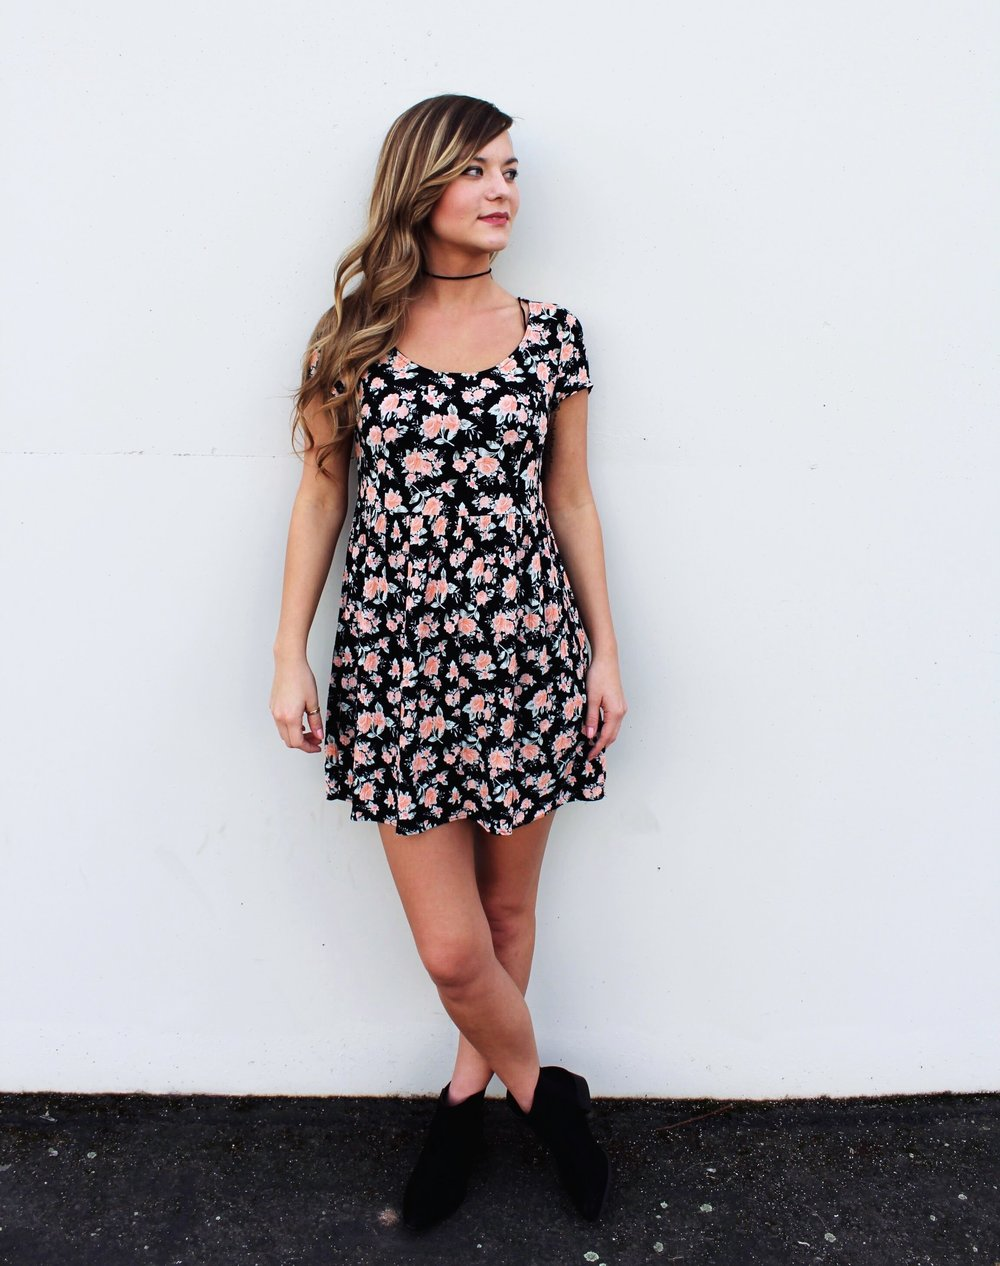 Floral 90's Style Mini Dress with a Back Lace up Tie Detail. Black Ankle Boots and Suede Choker Necklace.